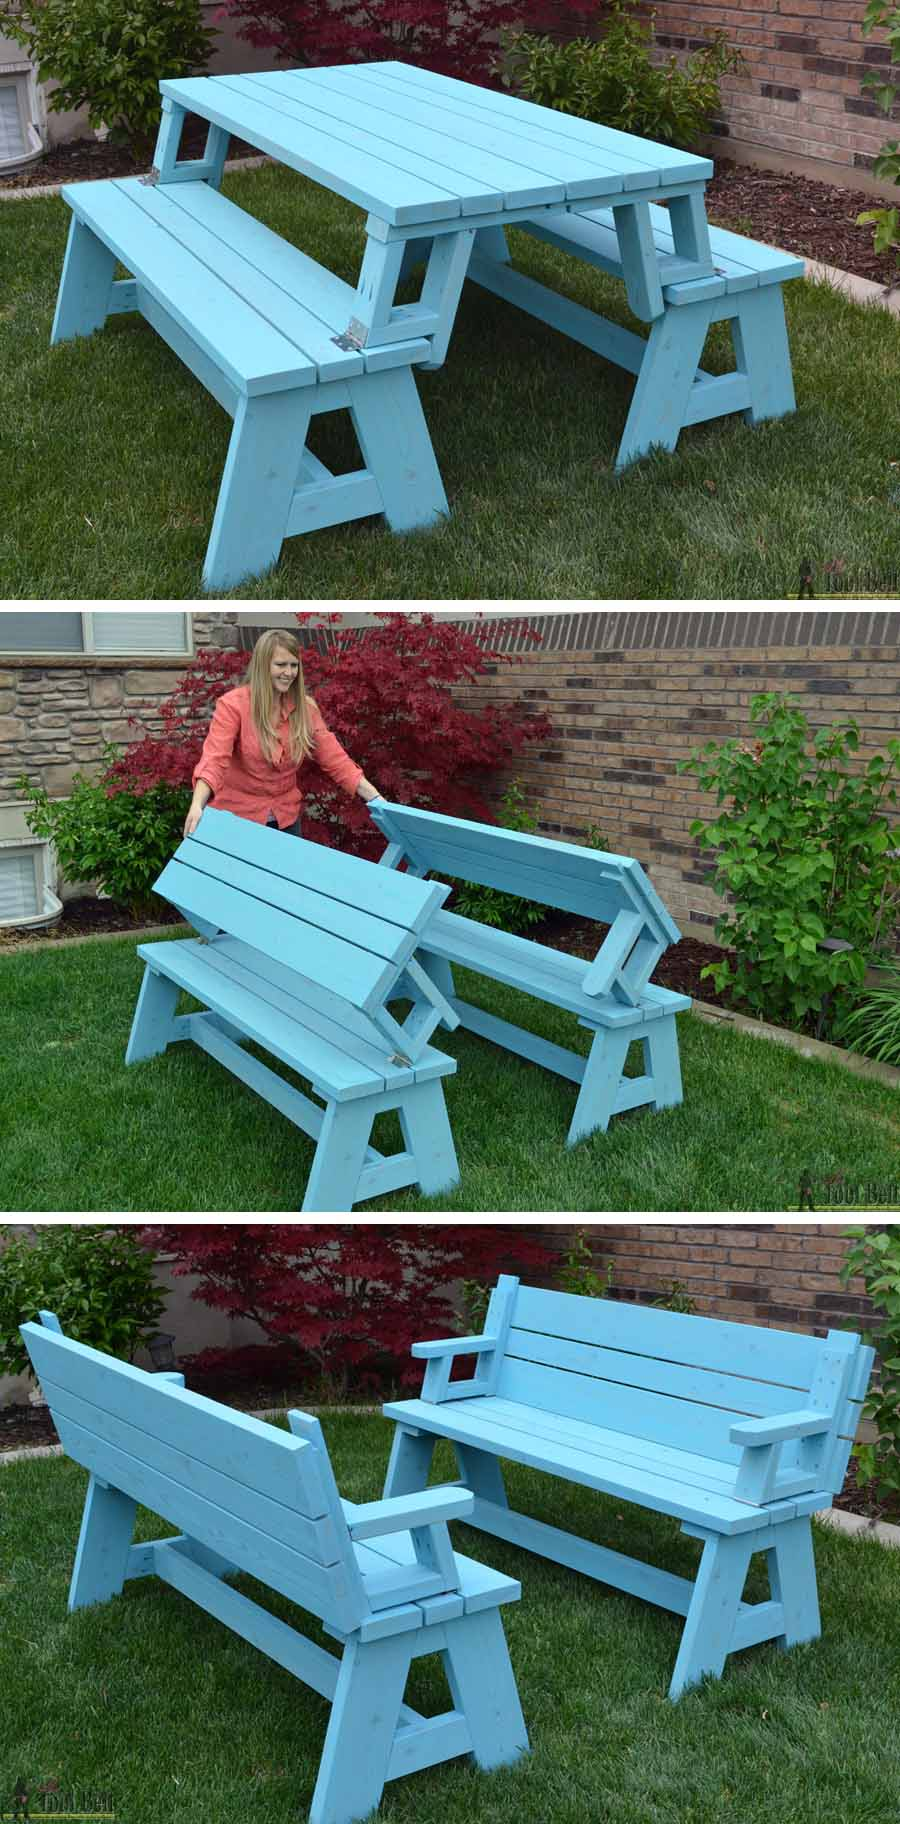 Convertible picnic table and bench her tool belt Picnic table that turns into a bench